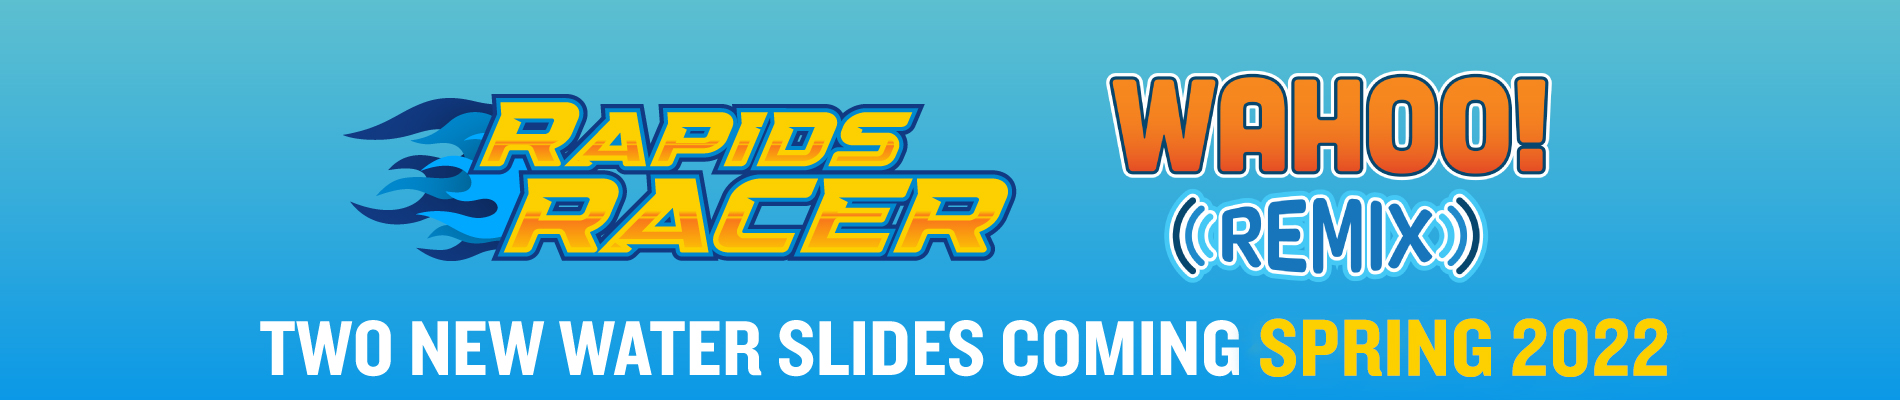 Rapids Racer and Wahoo Remix coming March 2022